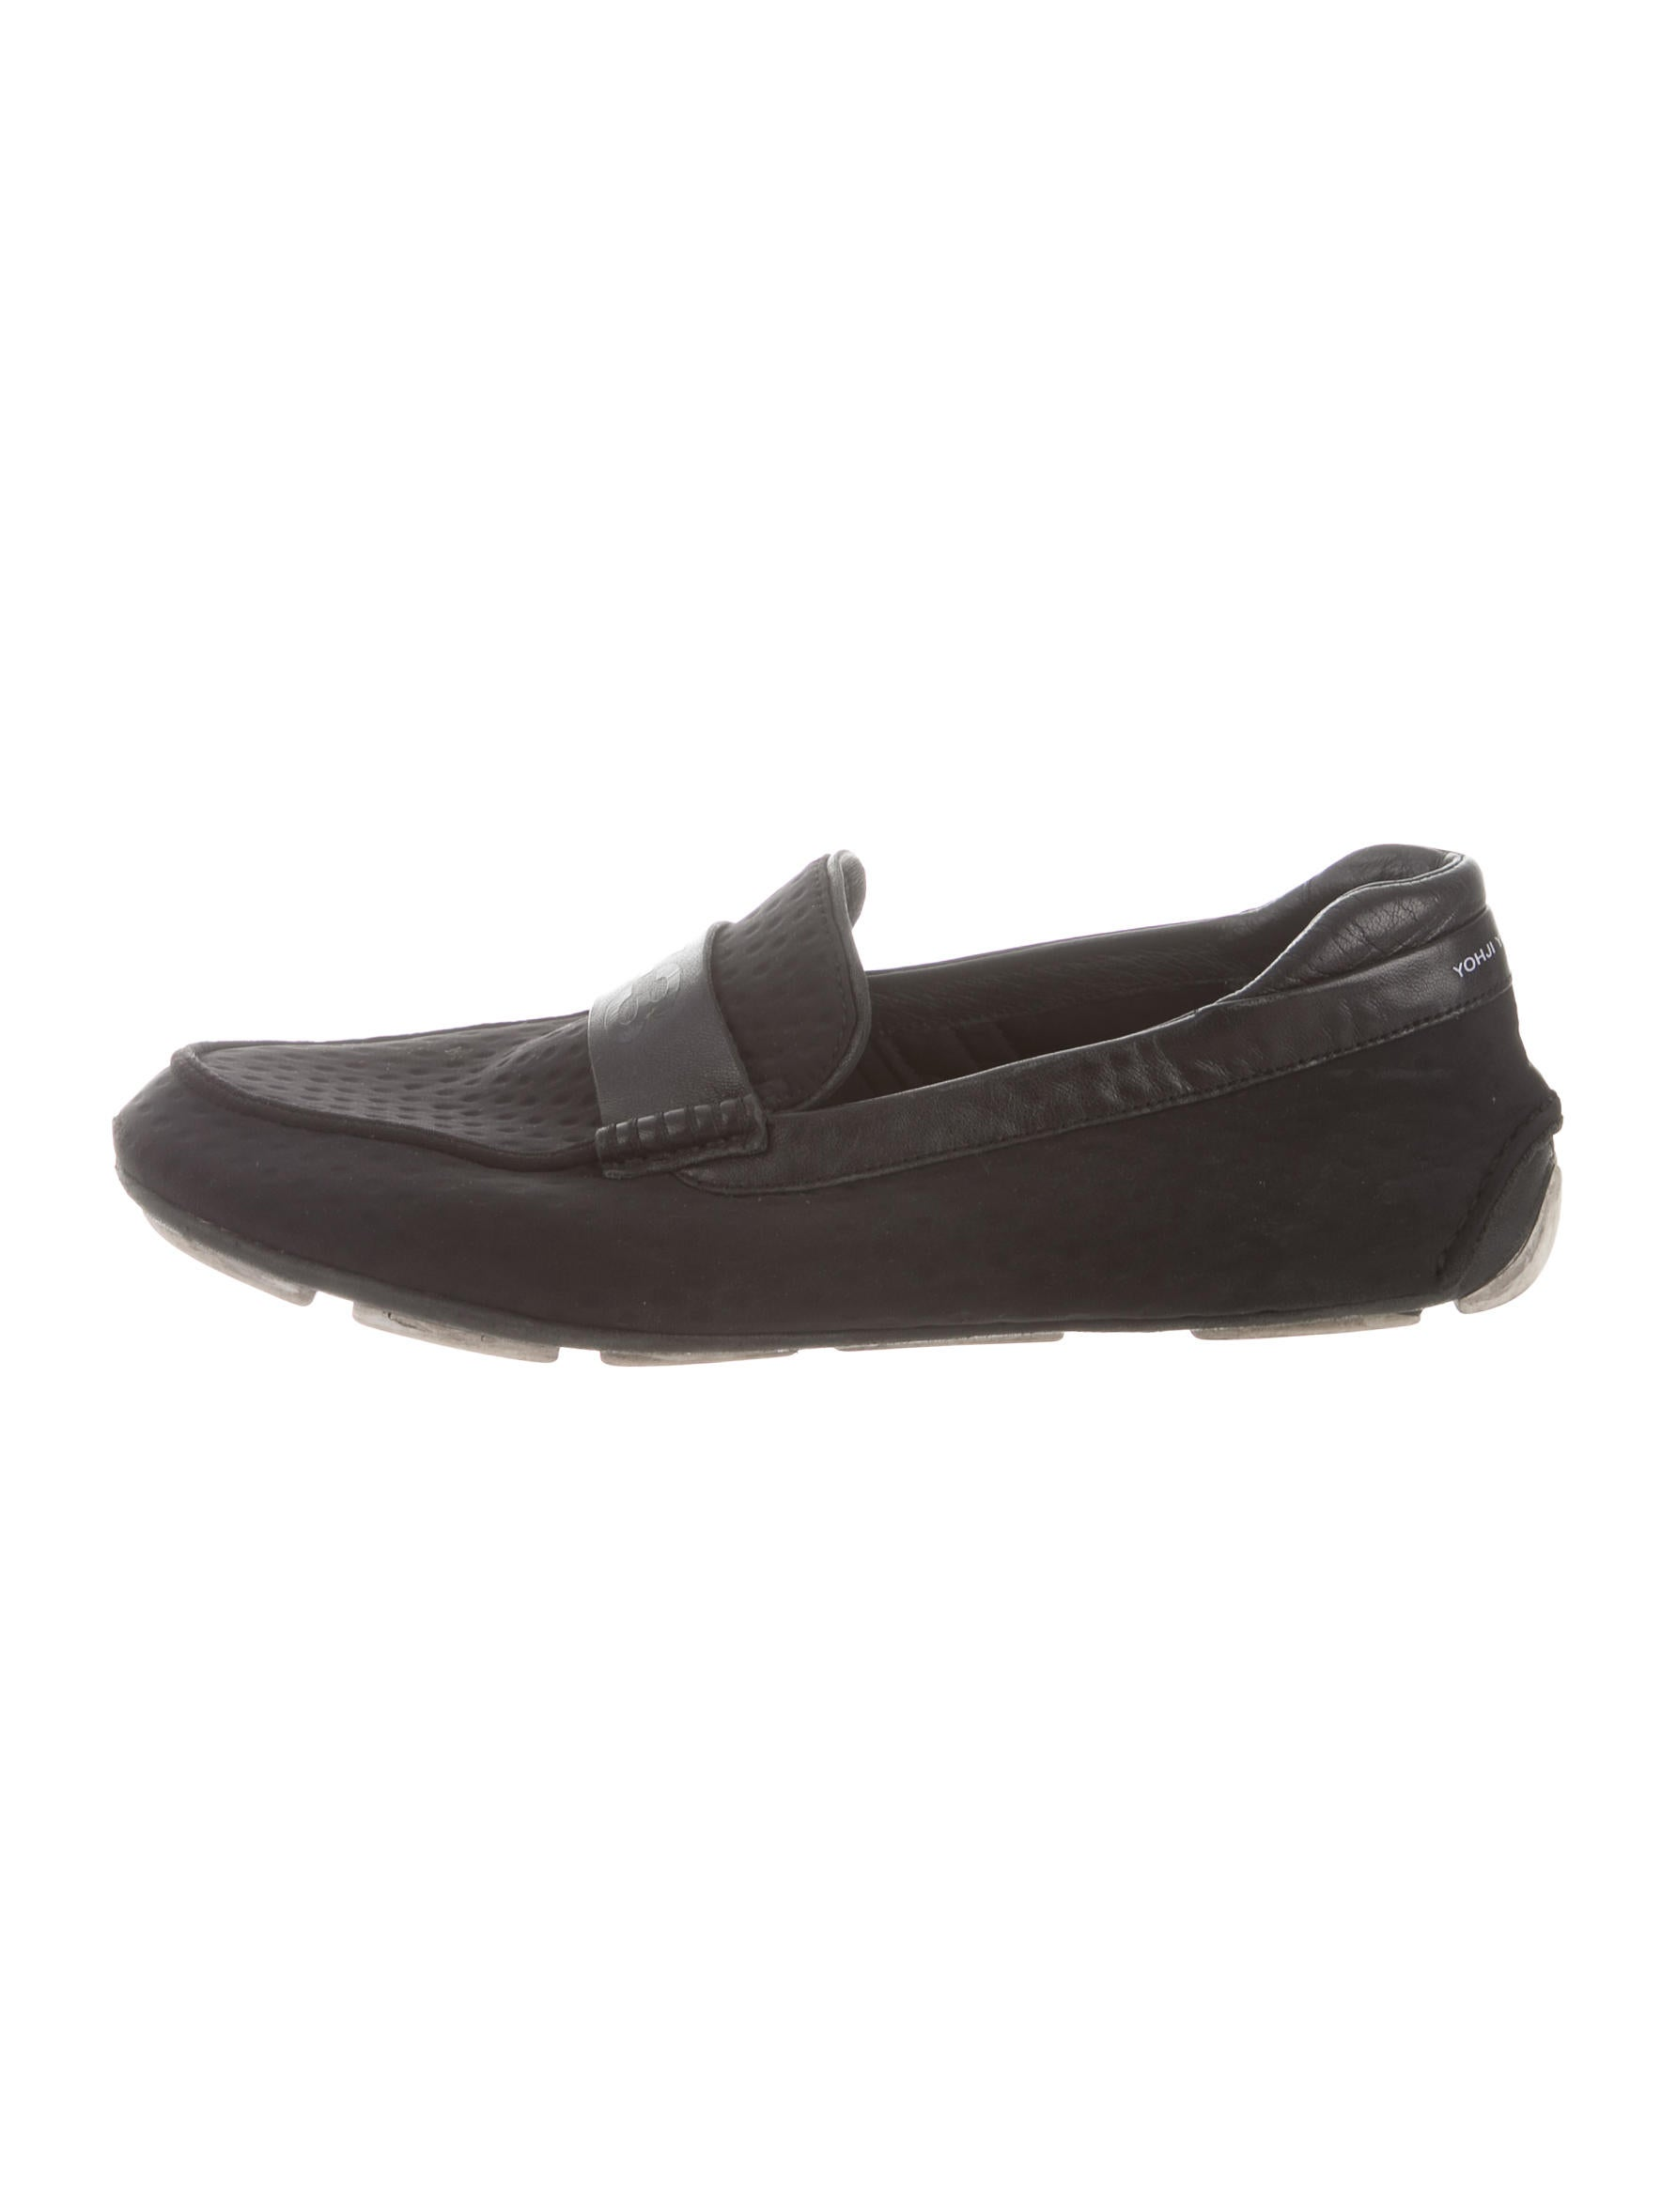 Y-3 X Adidas Logo Driving Loafers - Shoes - WY3AD20750   The RealReal